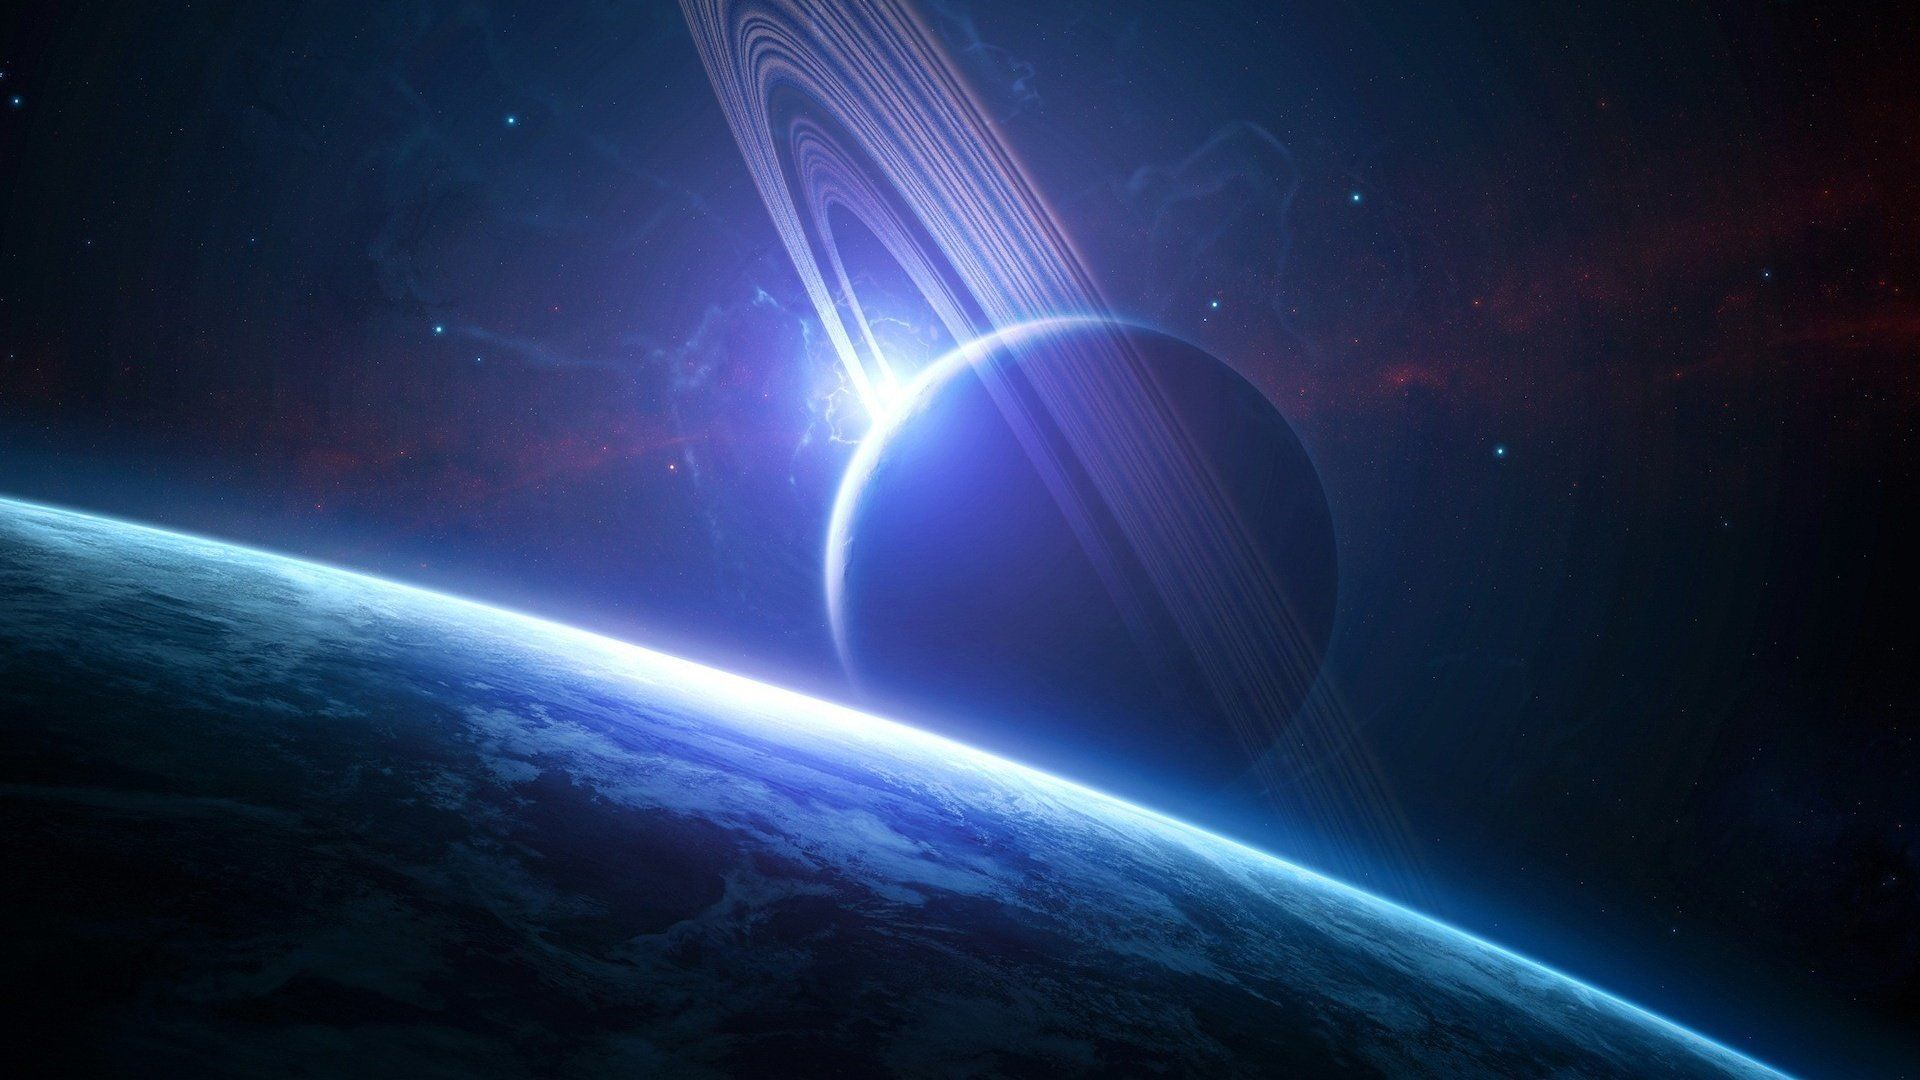 Planet wallpaper theme